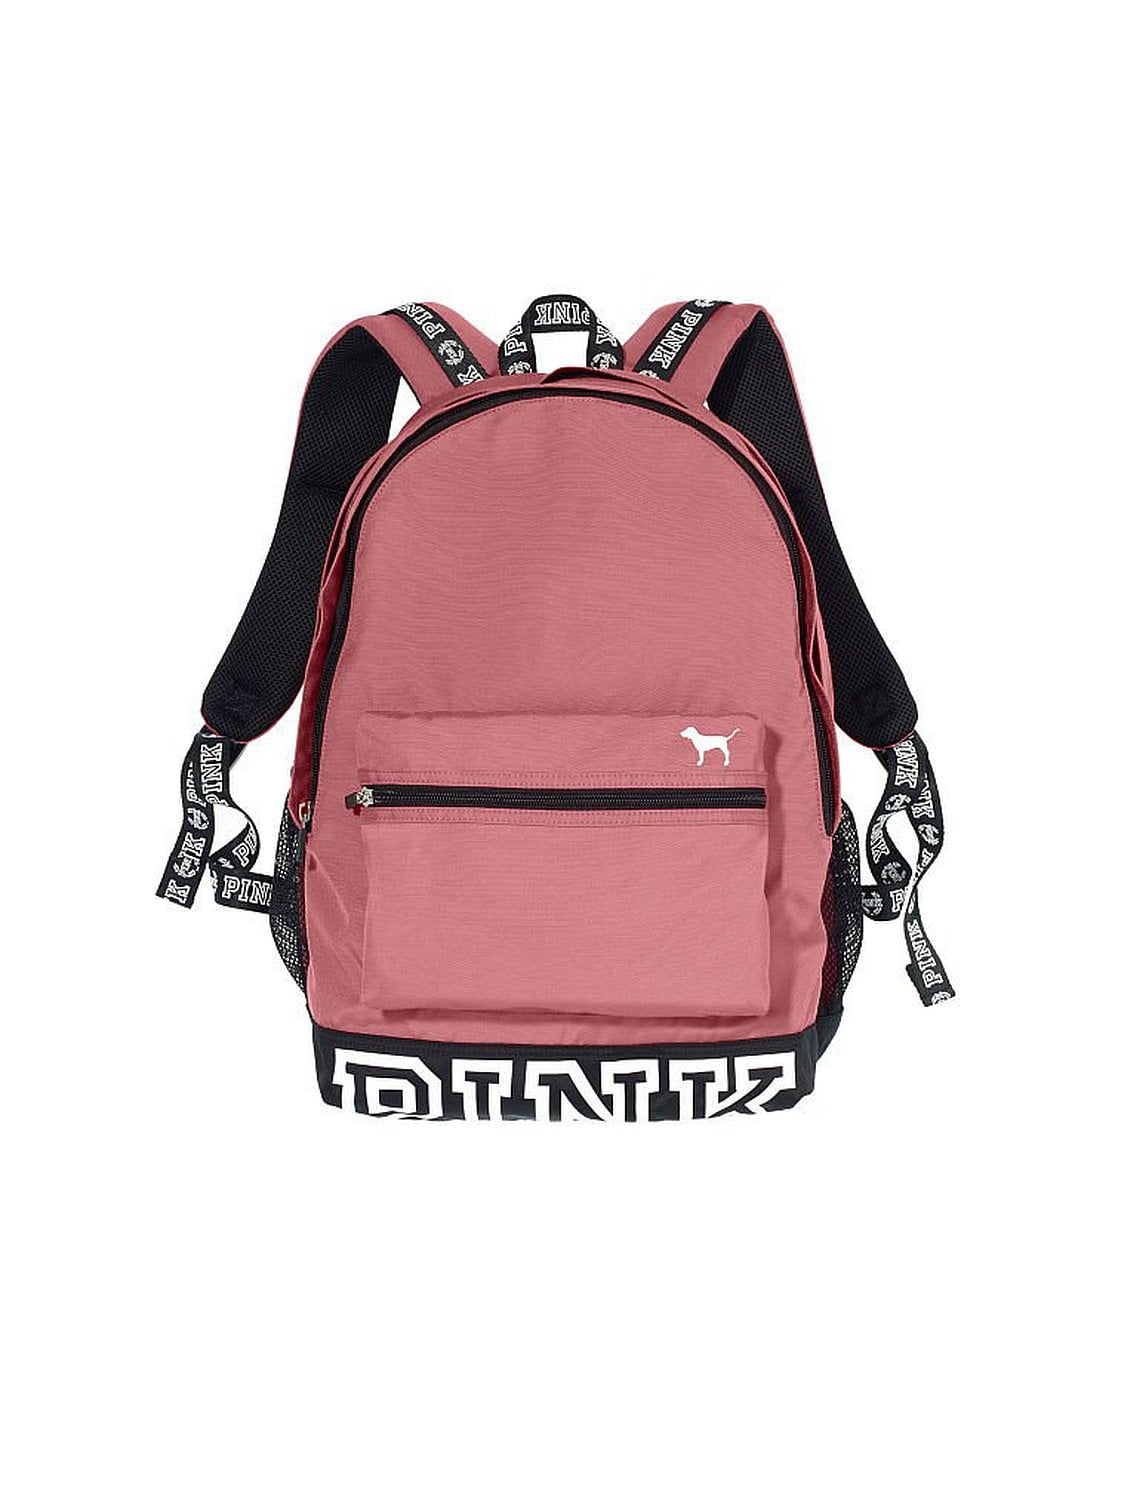 bdbc058a7725 Victoria s Secret Pink Campus Backpack - Walmart.com